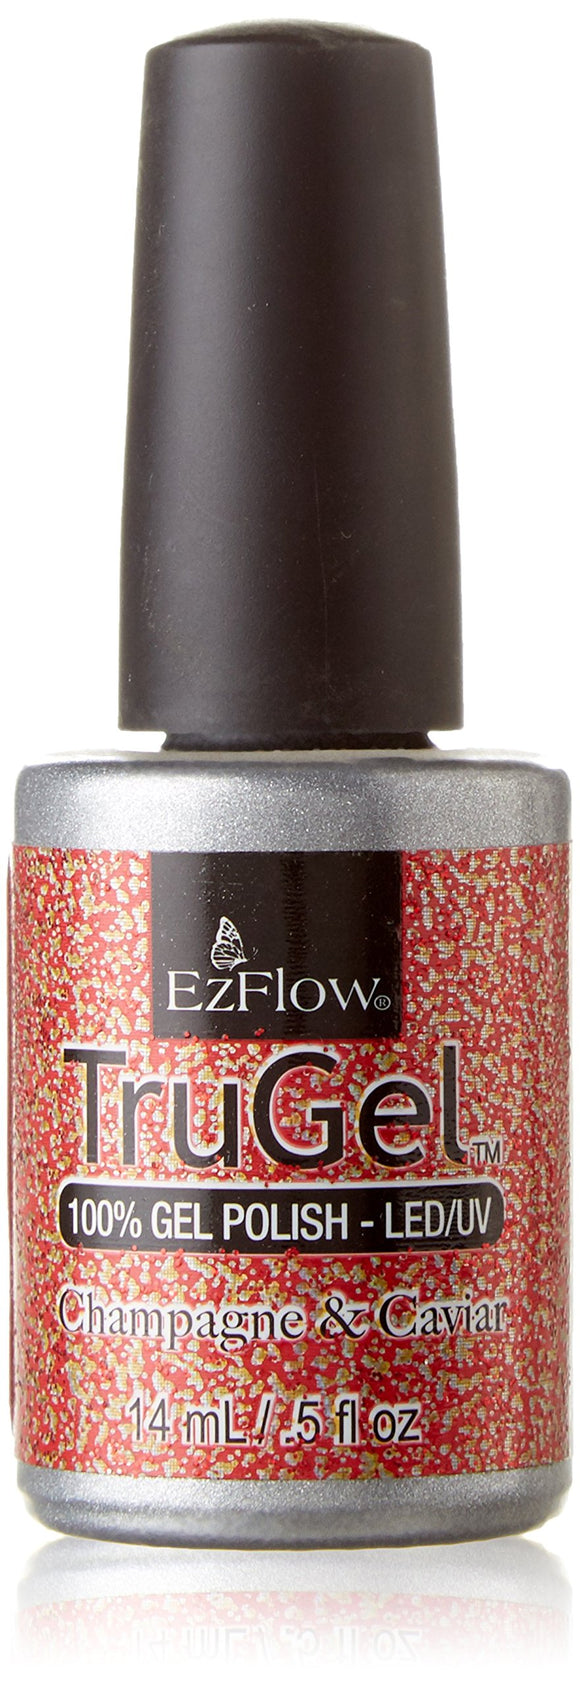 Ez Flow TruGel LED/UV Gel Polish - 14 mL (Champagne & Caviar - EZTG42337)